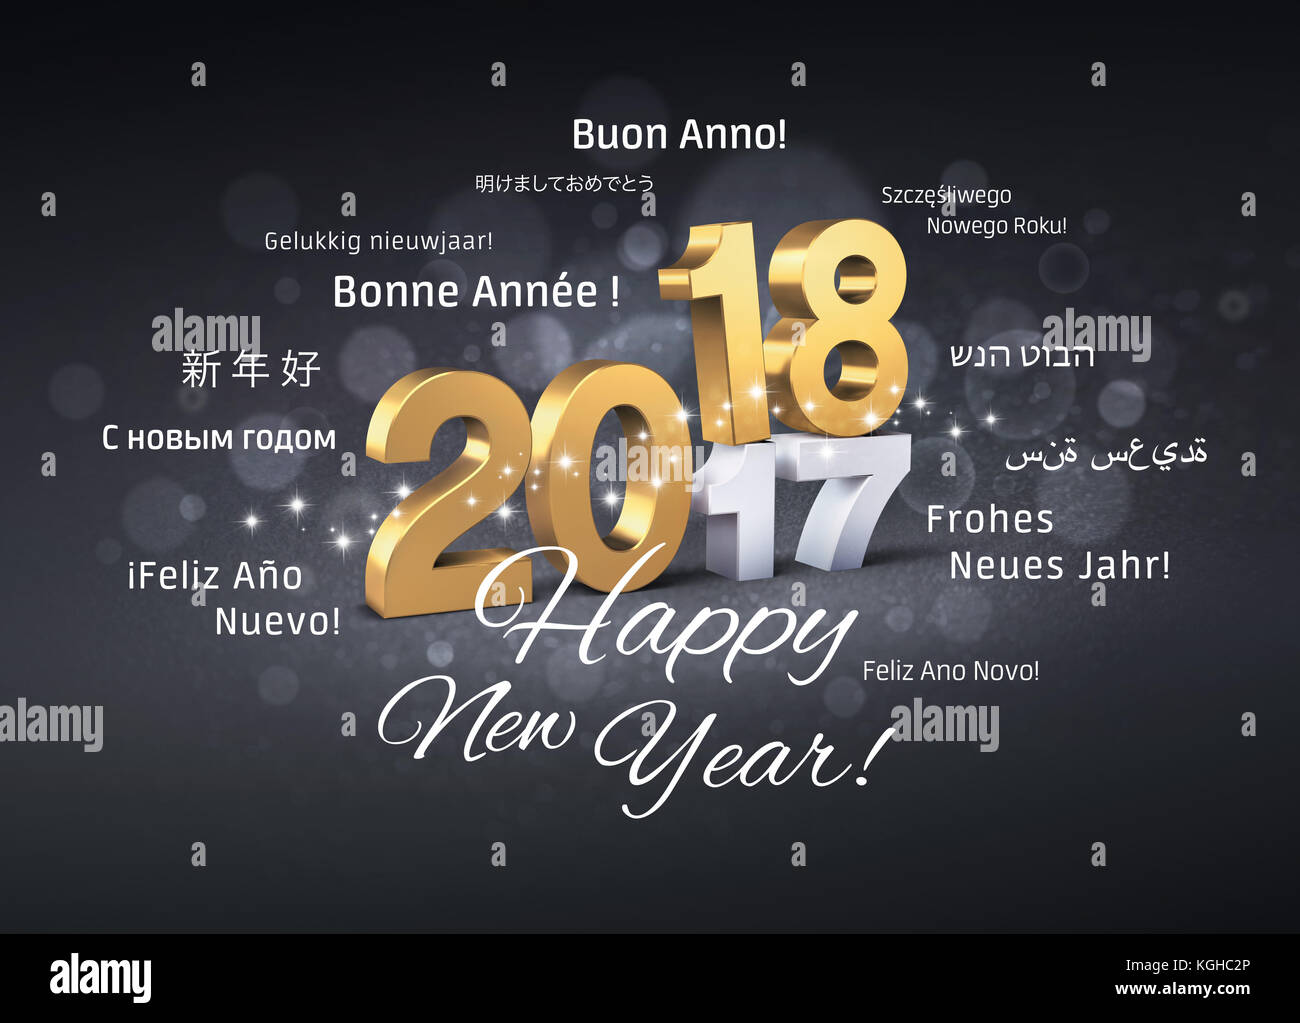 Gold 2018 New Year typescript above 2017 and greetings in multiple languages, on a festive black background - 3D Stock Photo